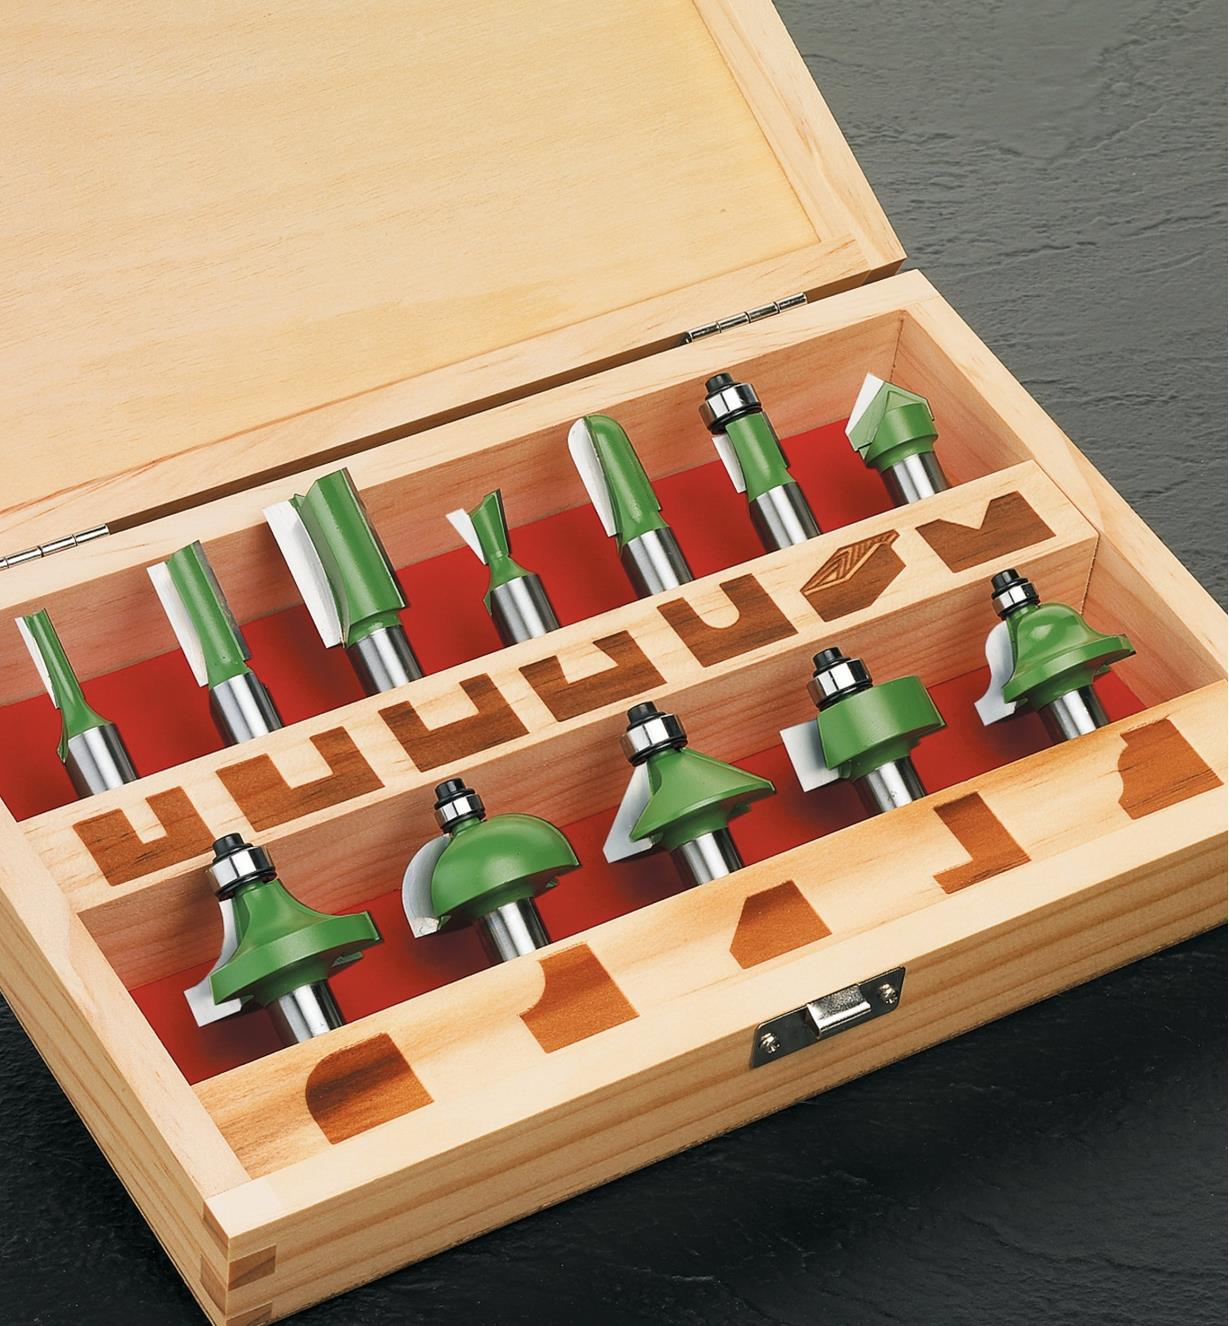 16J0101 - Box of 12 Router Bits, 1/2